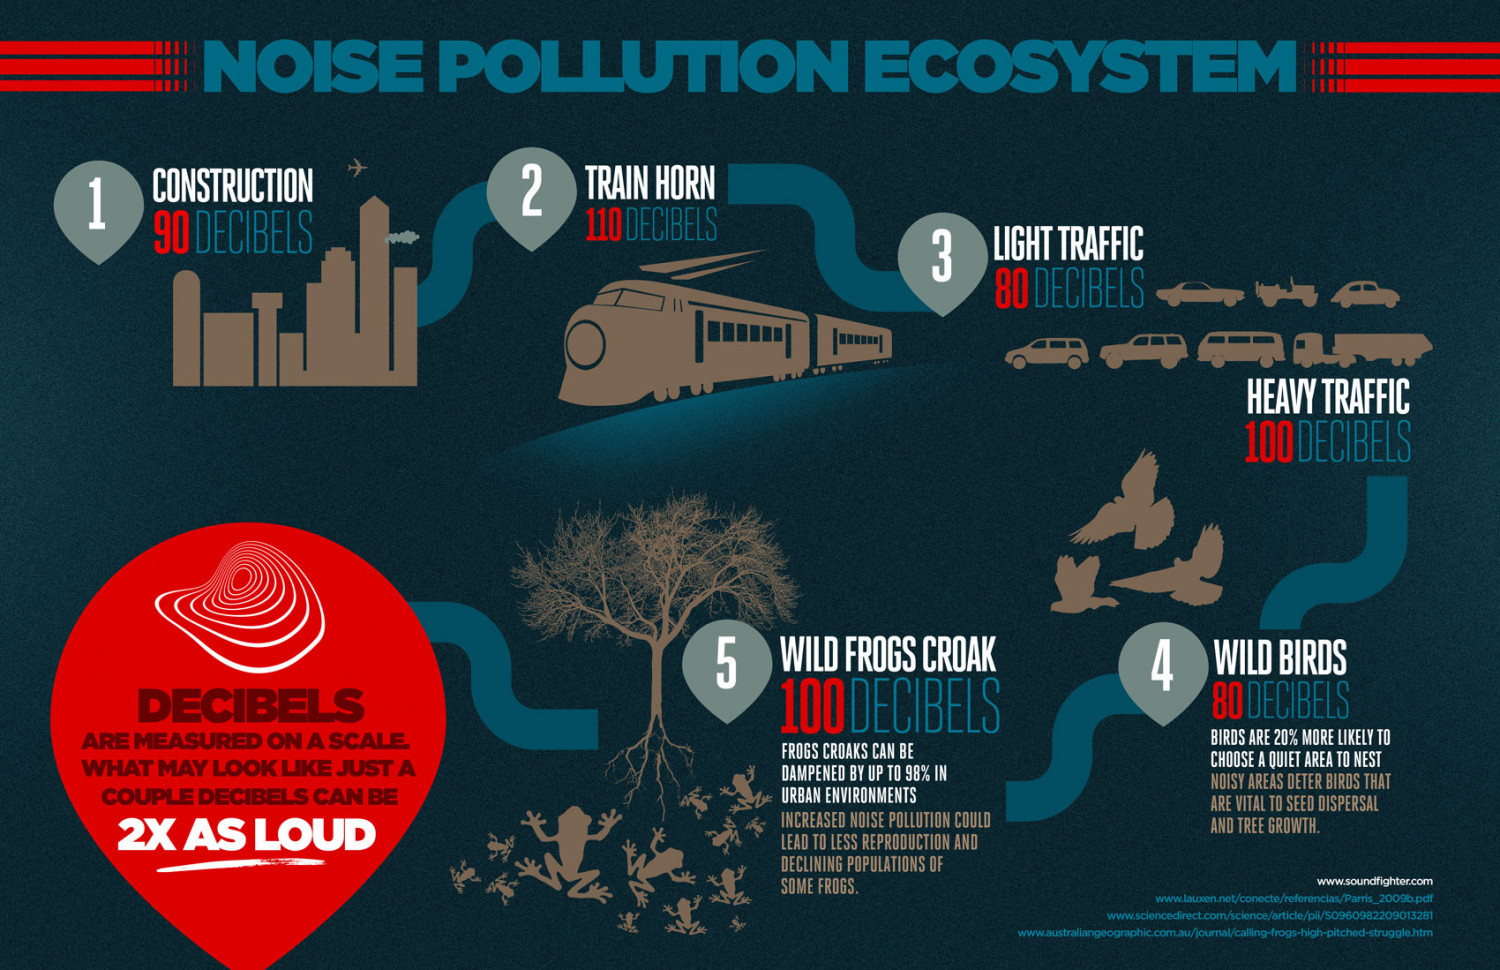 The Noise Pollution Ecosystem Infographic